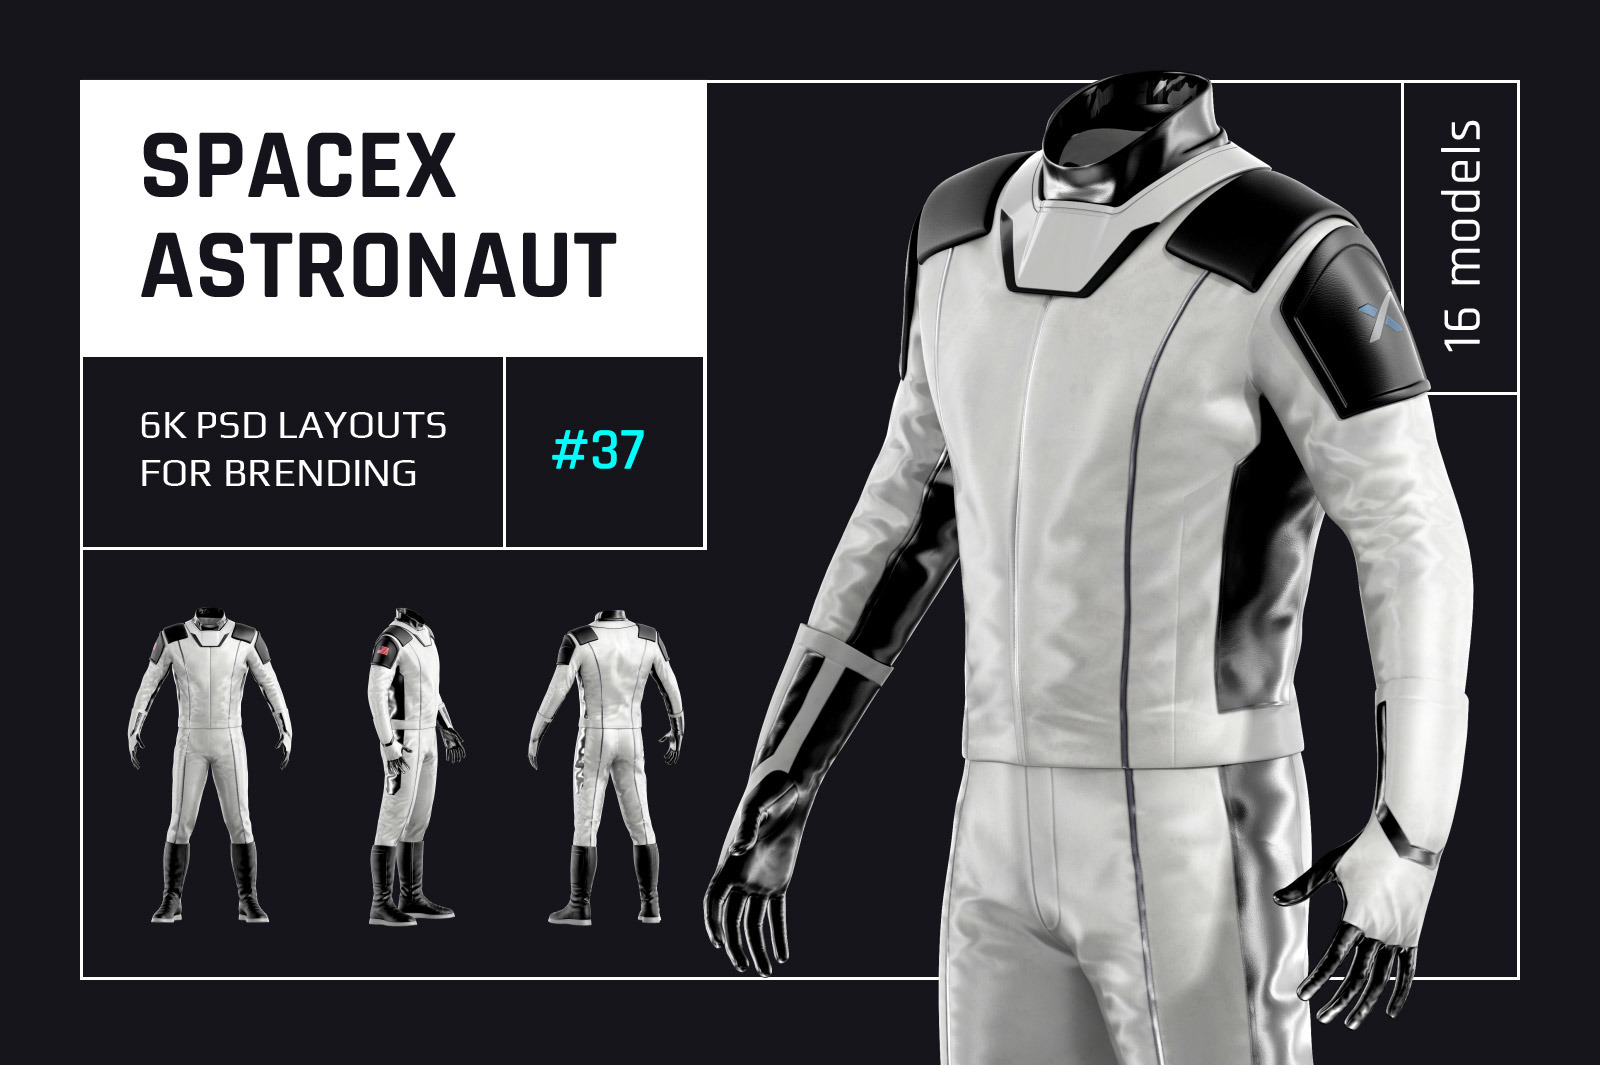 PSD Mockup 3D model SpaceX Astronaut #37